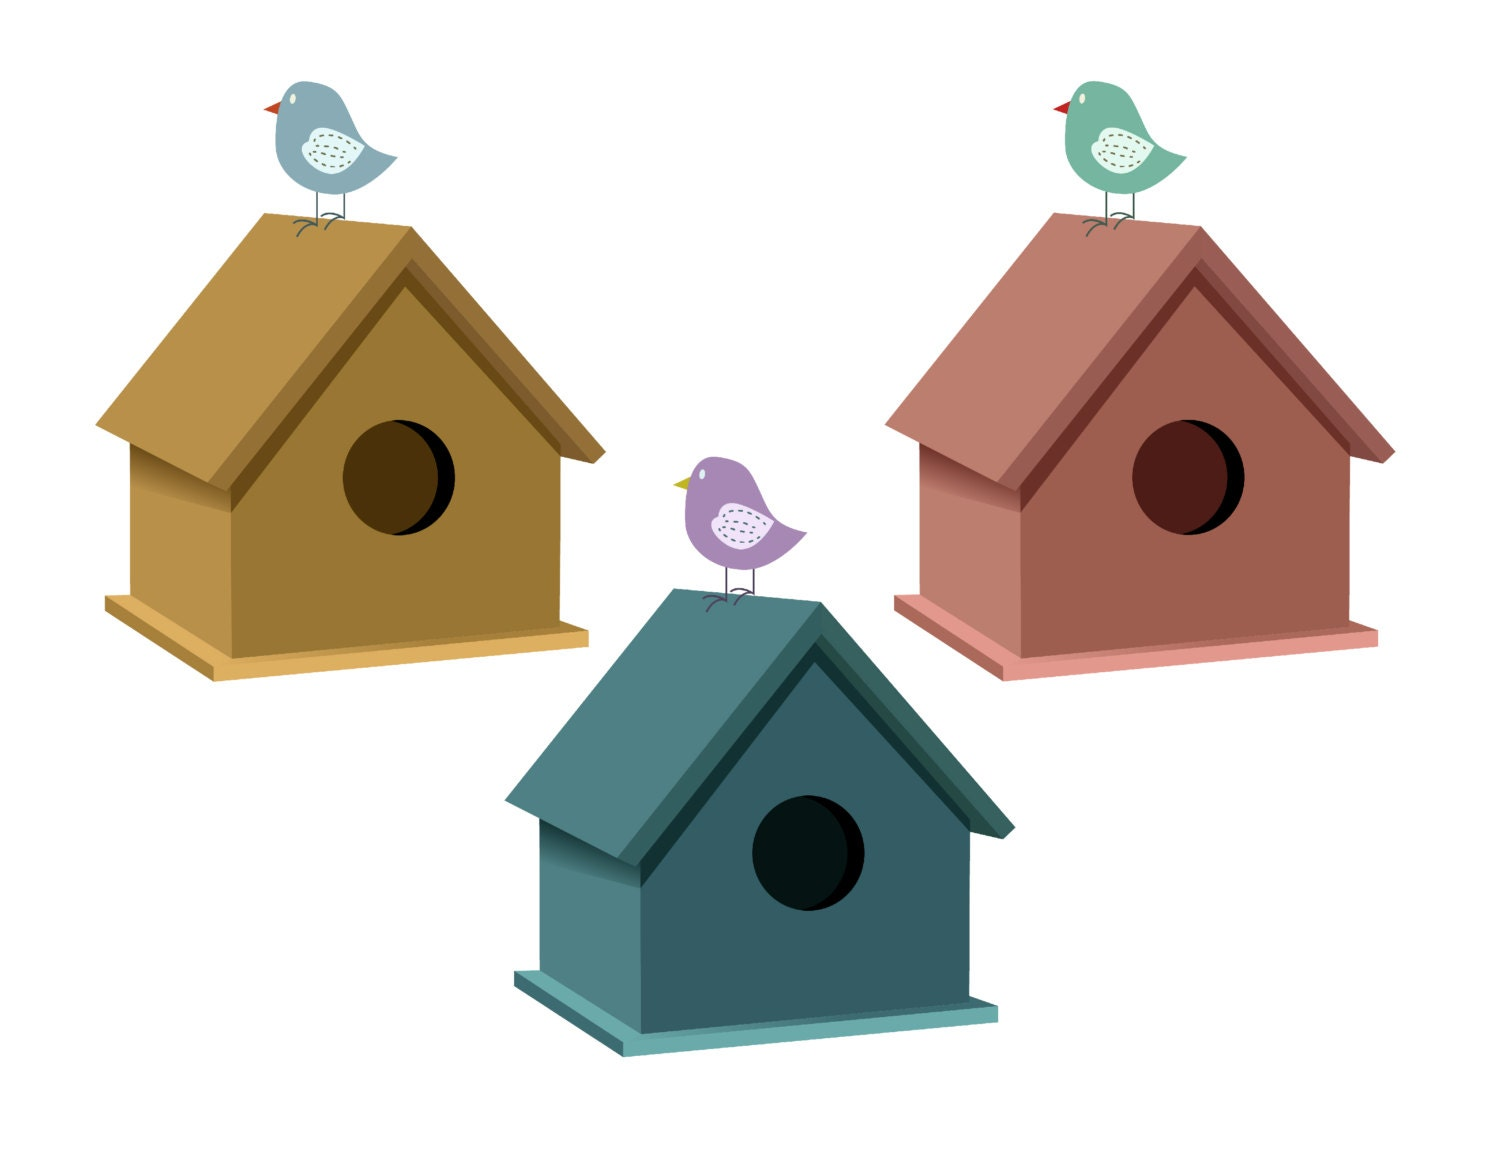 bird clip art bird house clipart birdhouse illustration animals rh etsystudio com cute birdhouse clipart birdhouse clipart free